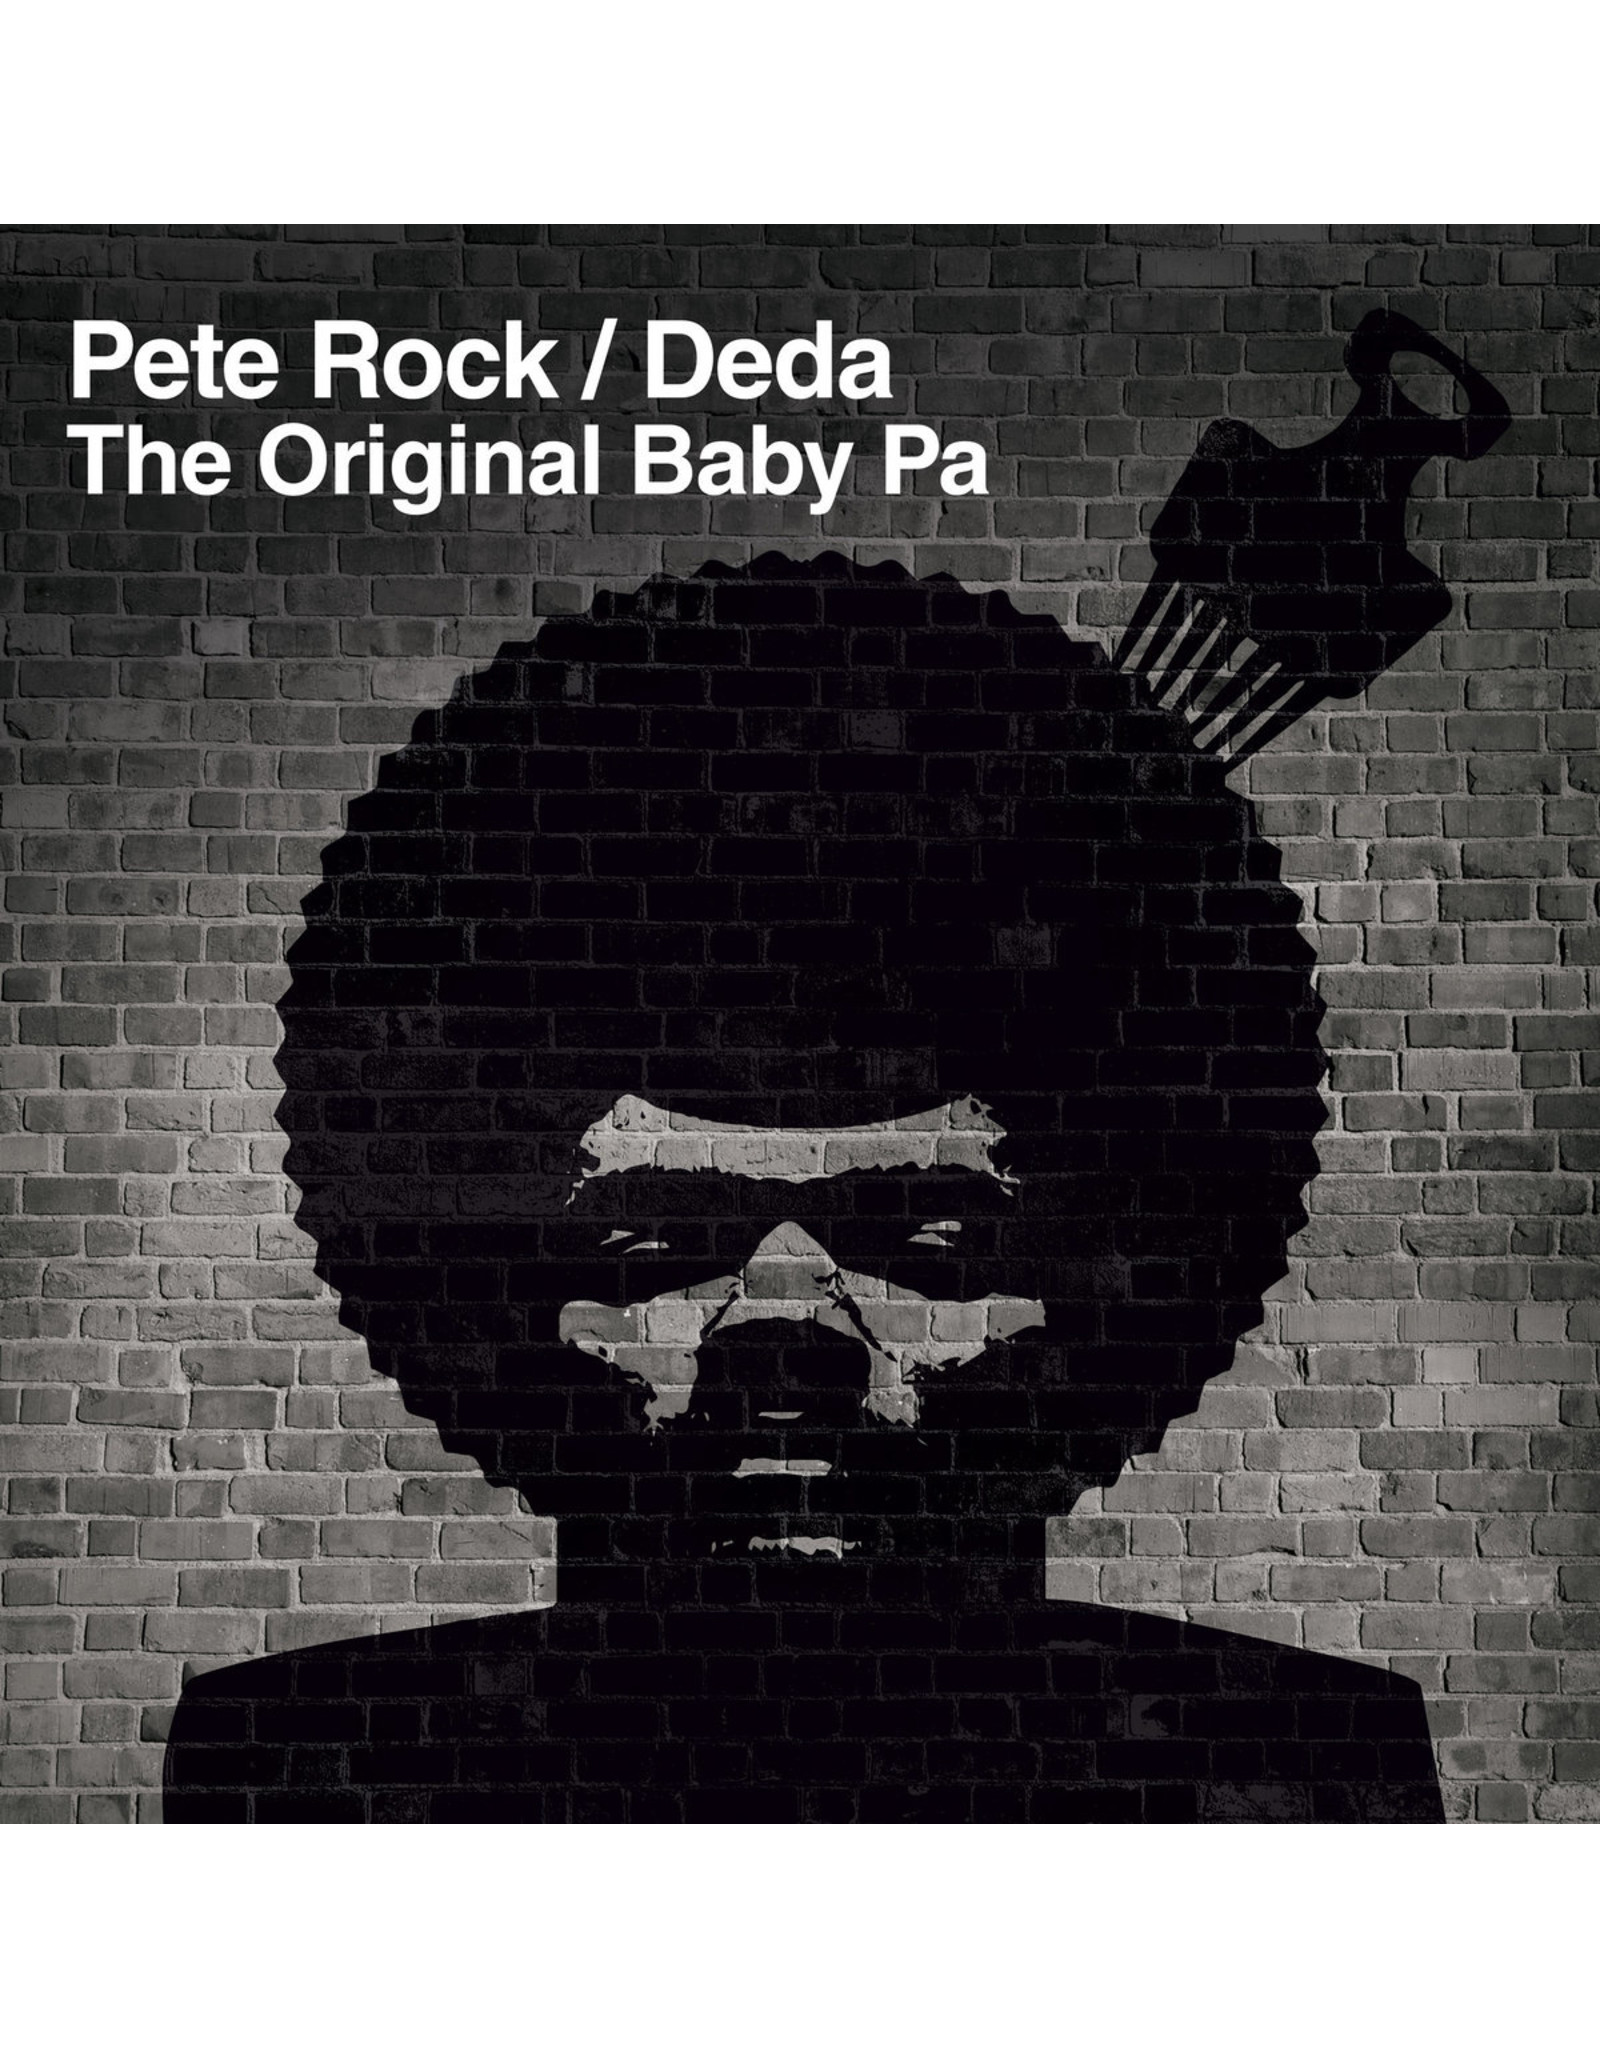 New Vinyl Pete Rock / Deda - The Original Baby Pa 2LP